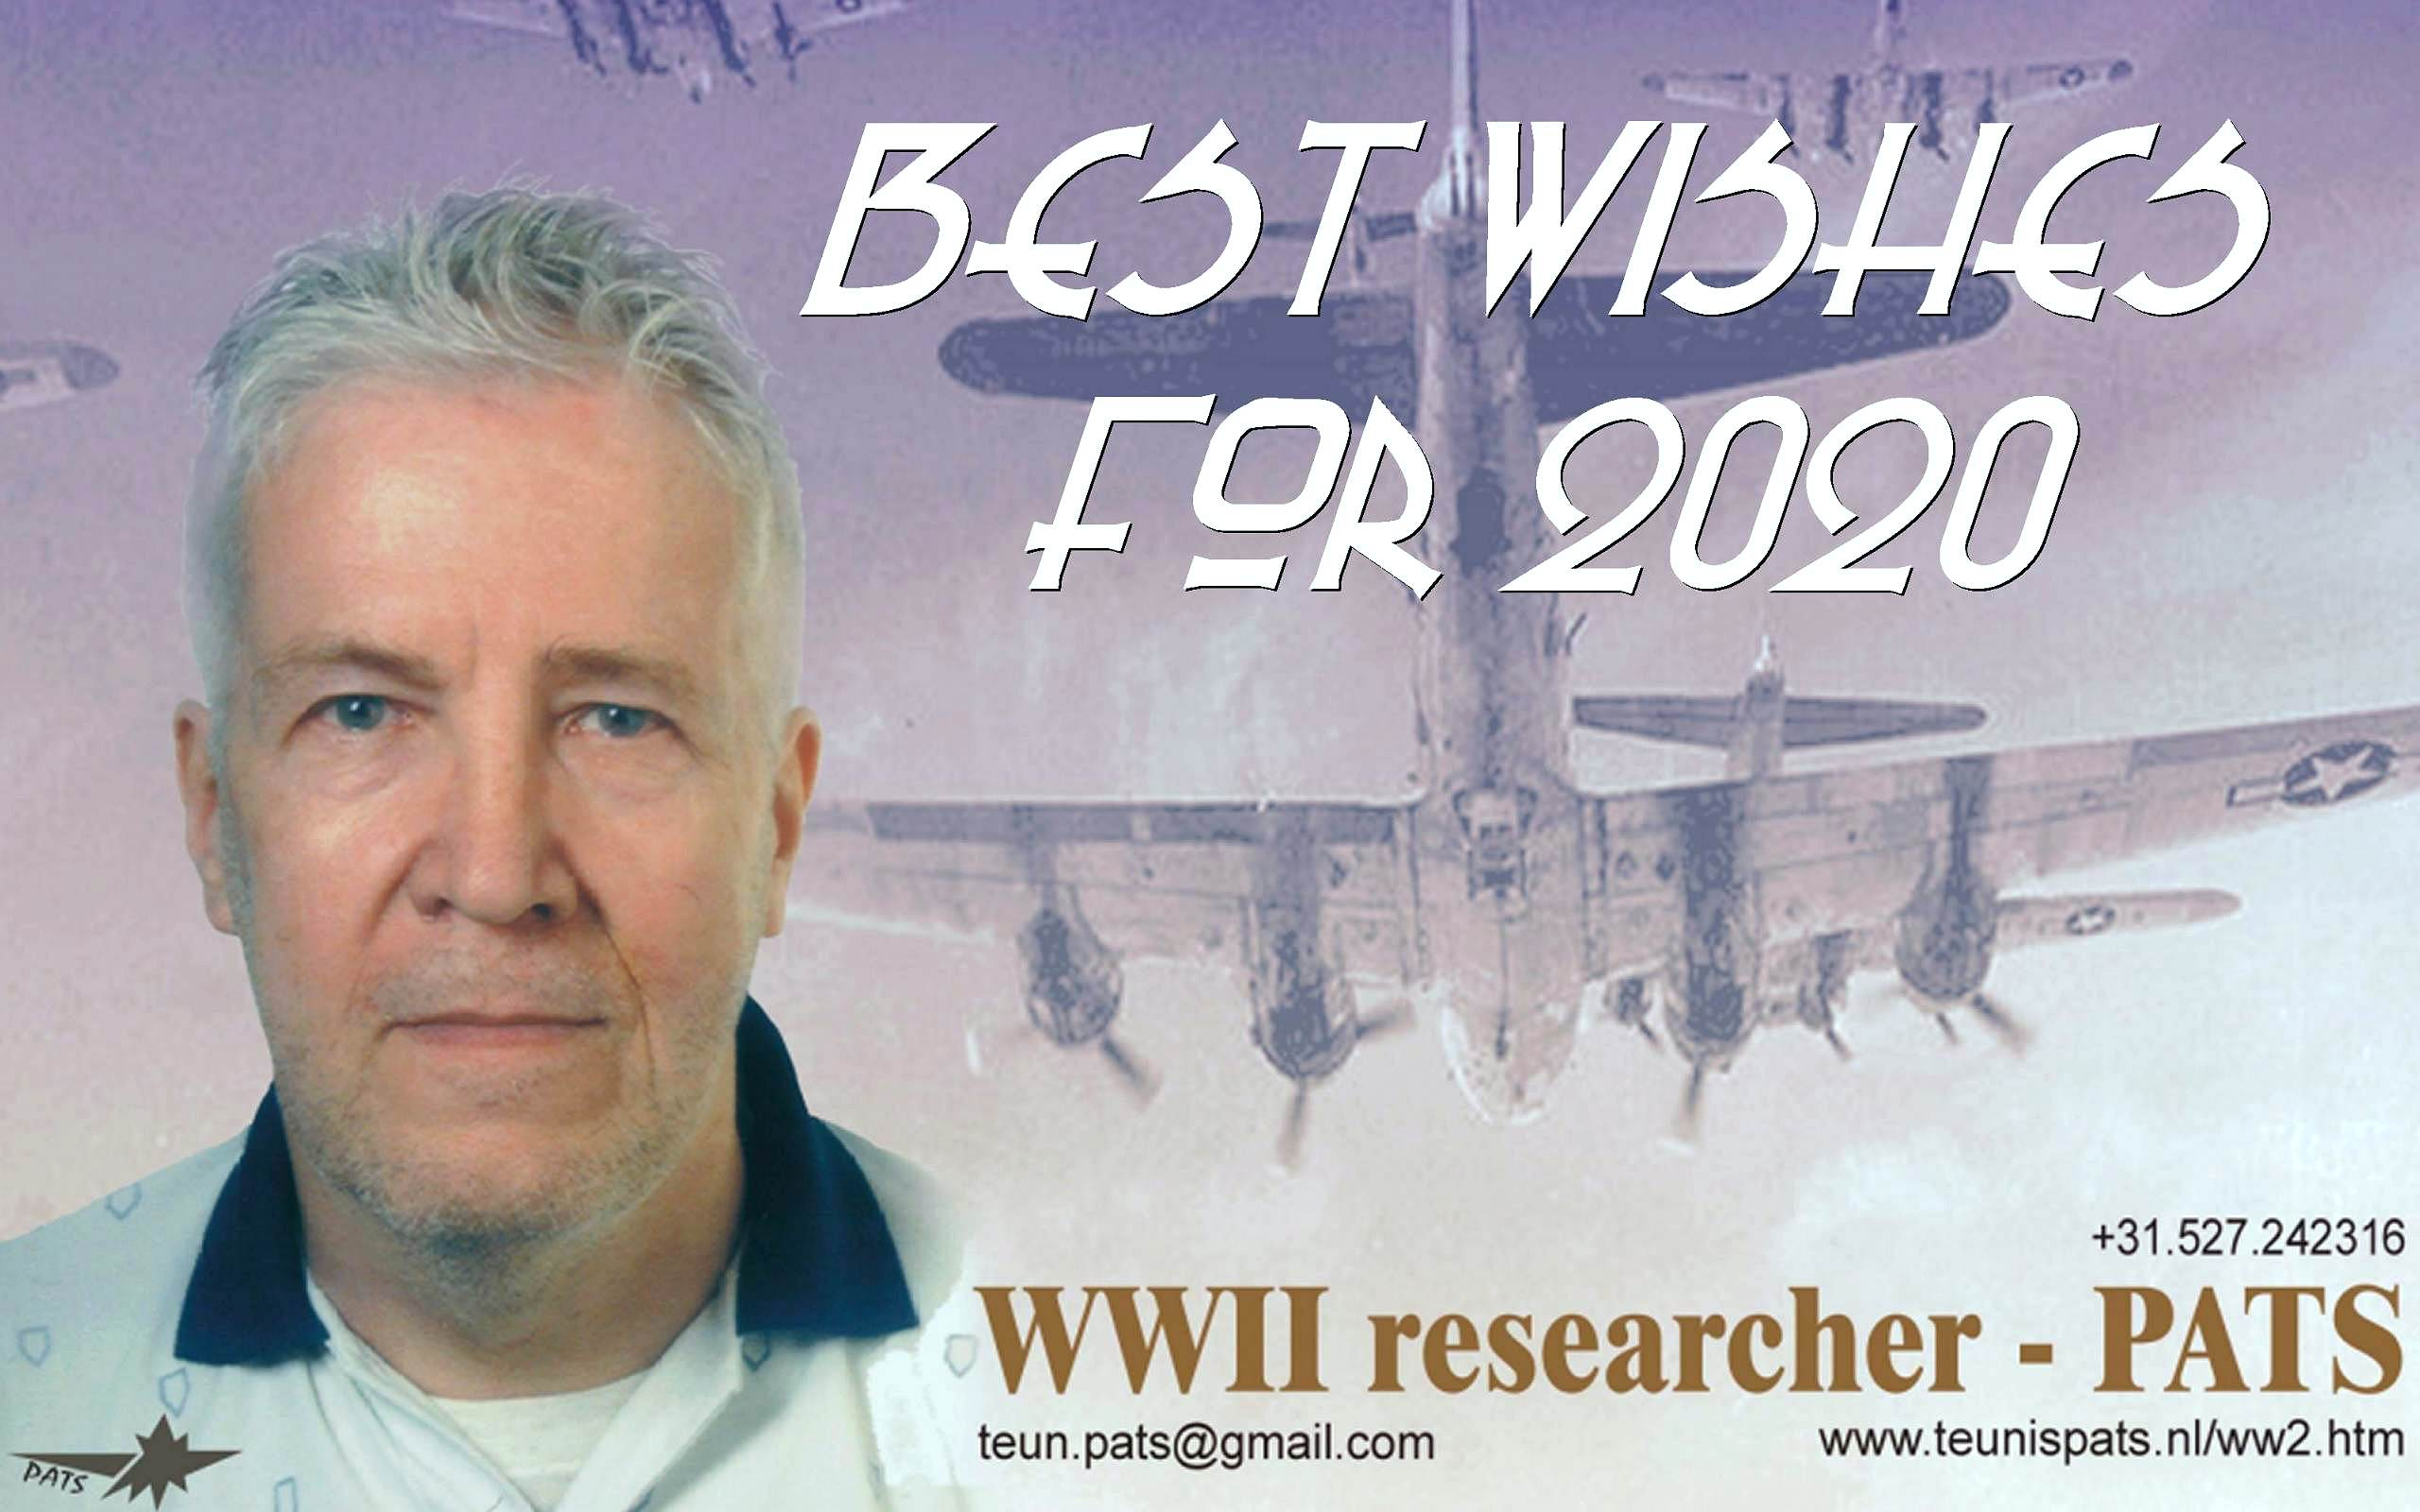 WWII researcher - PATS